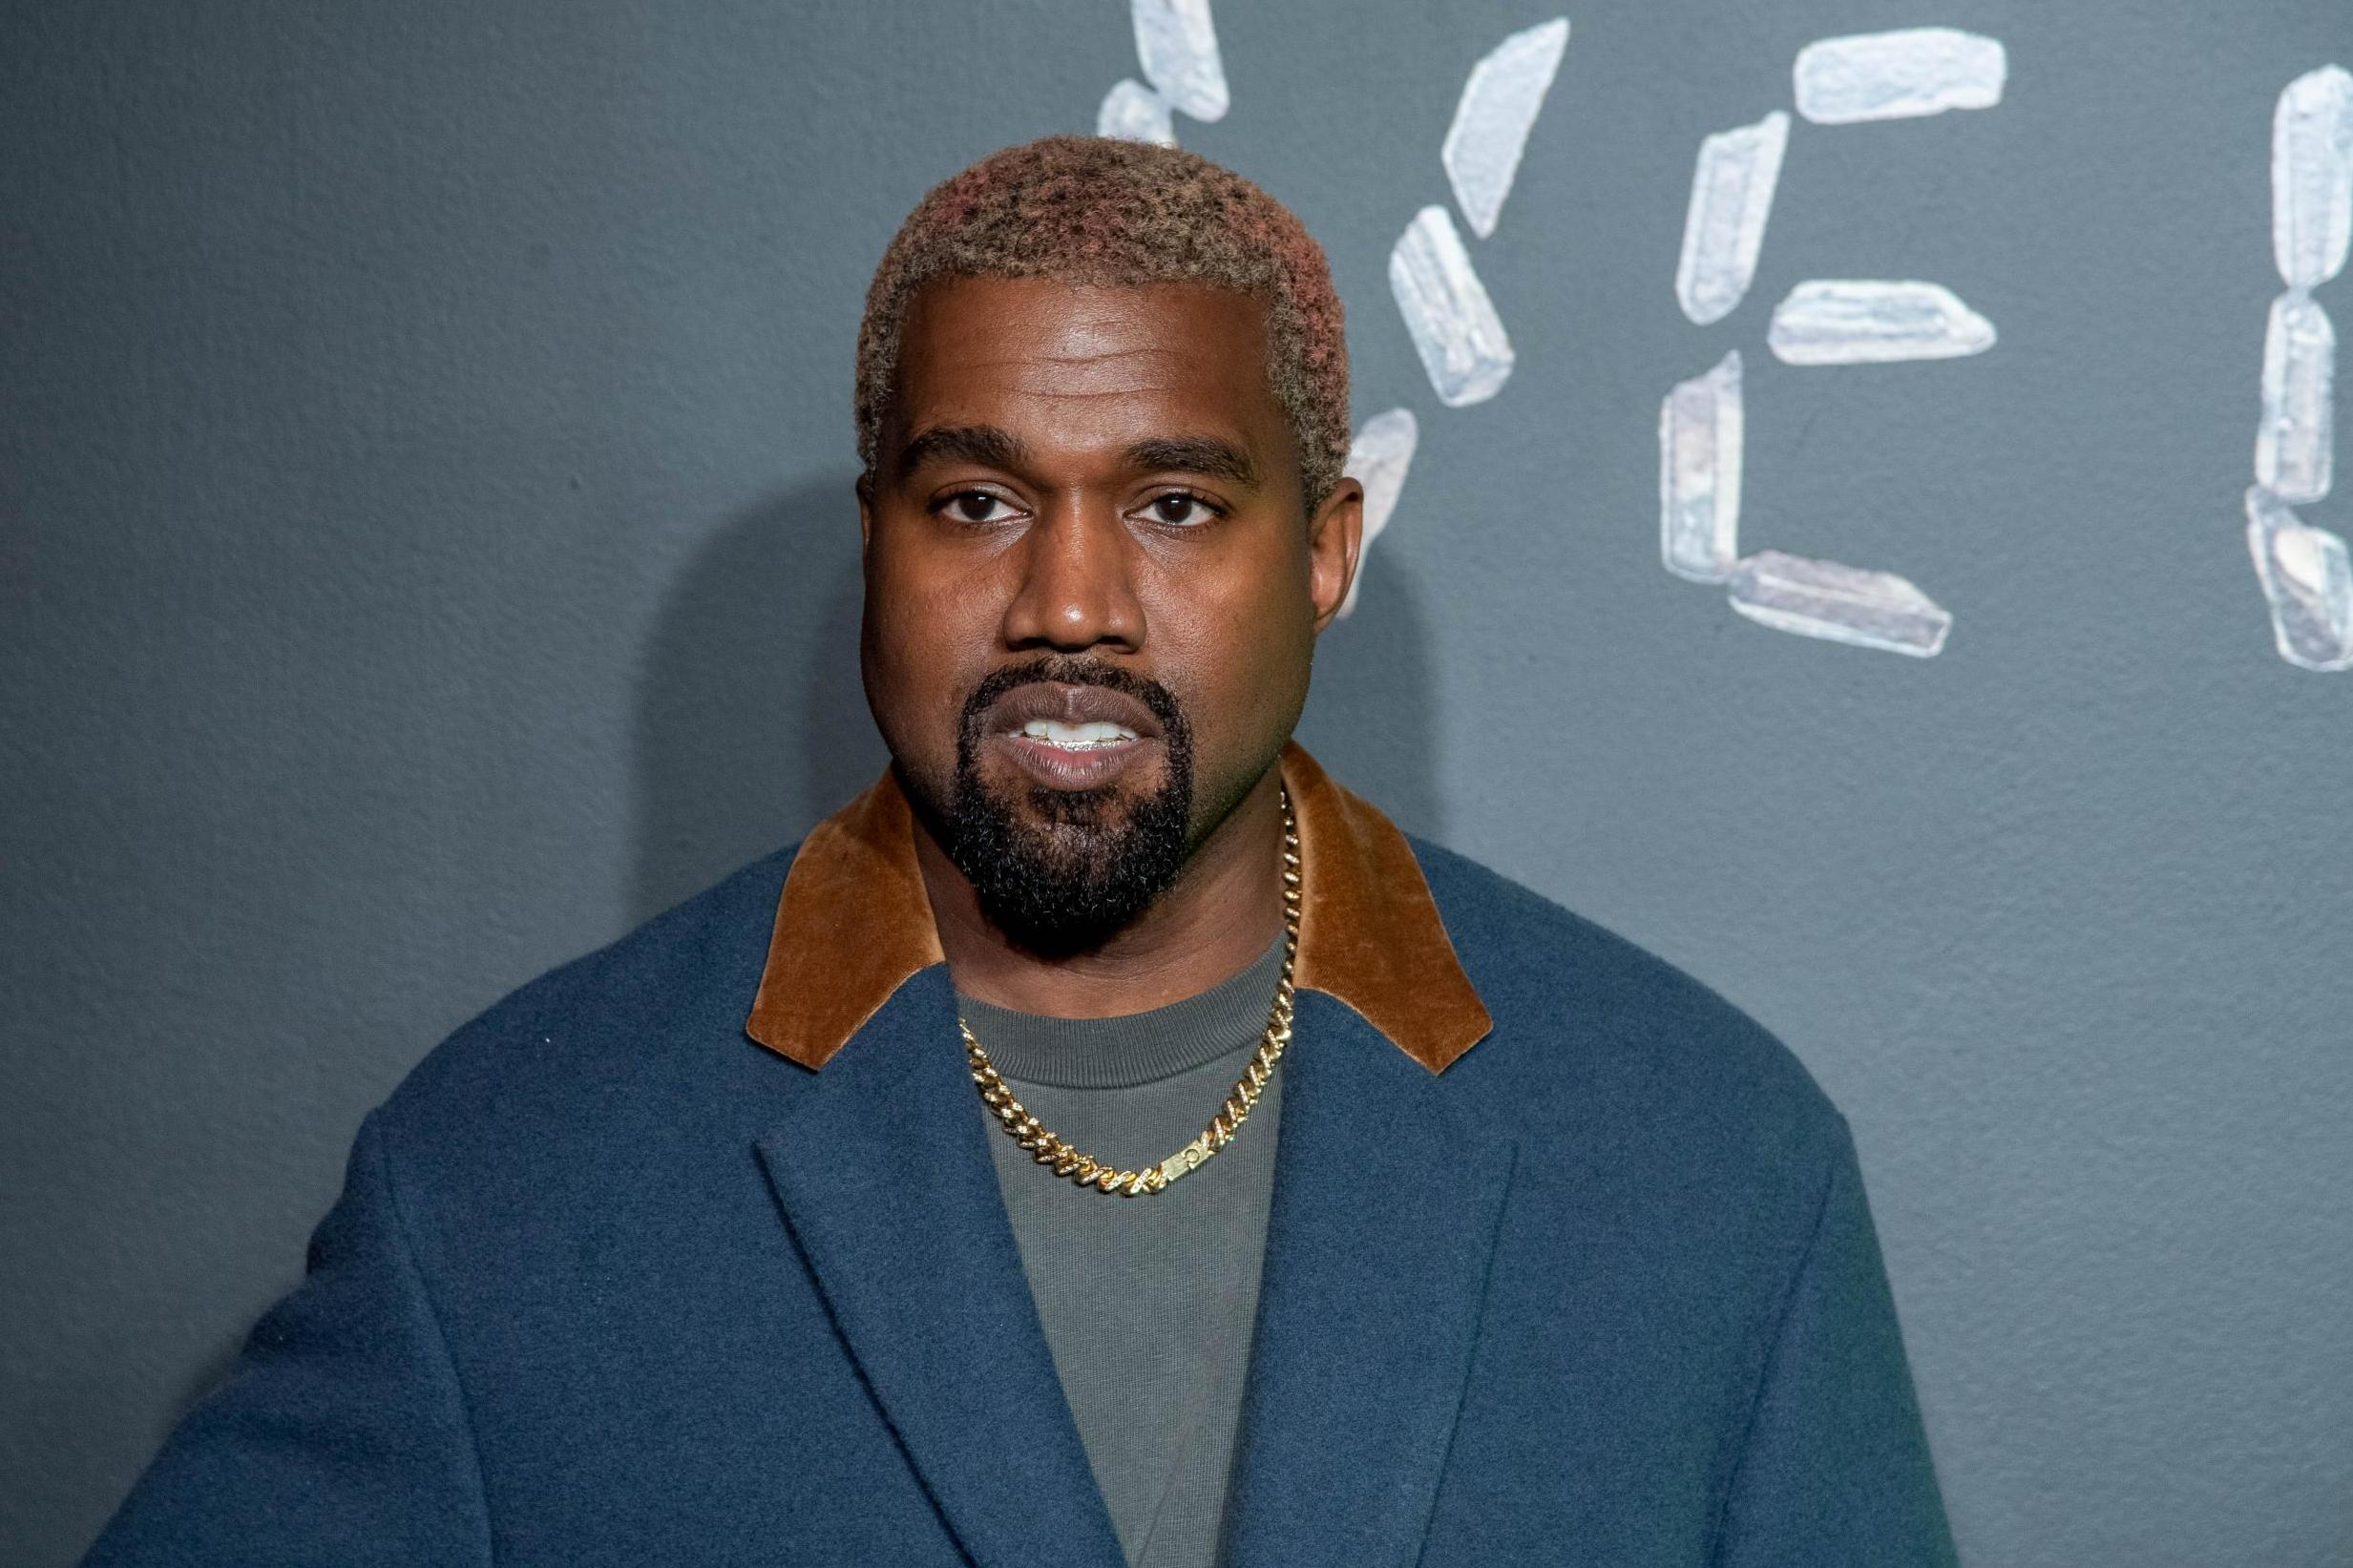 Kanye West vs Drake beef timeline: How one of pop culture's